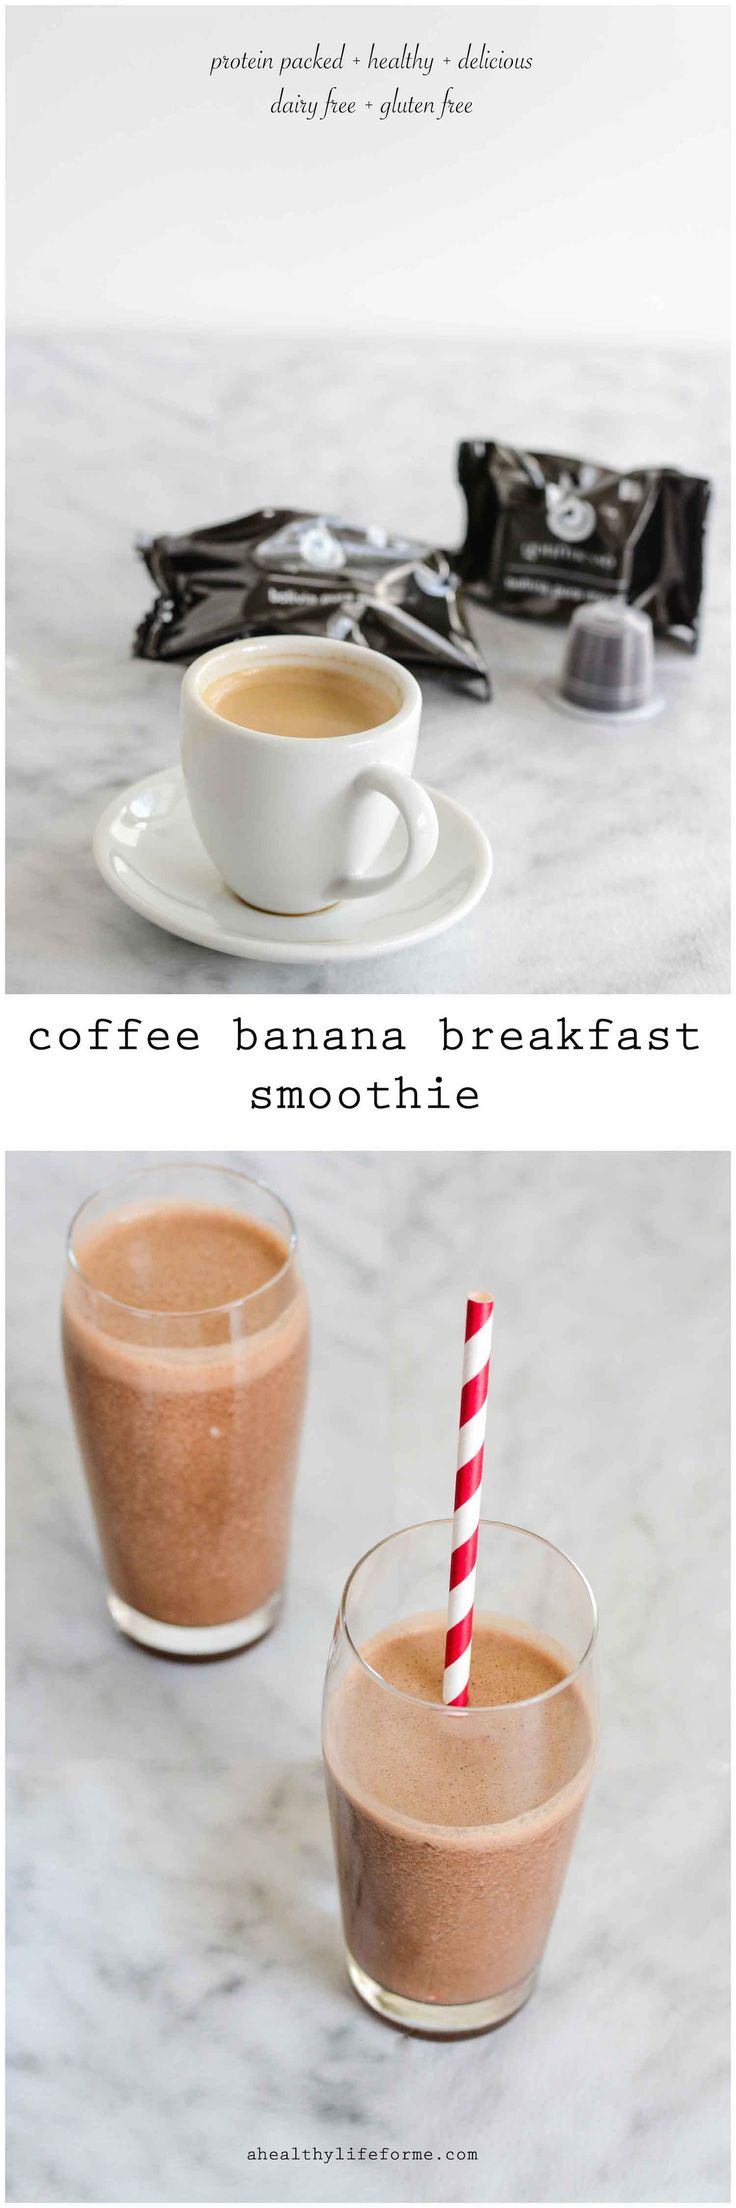 Coffee Banana Breakfast Smoothie - A Healthy Life For Me